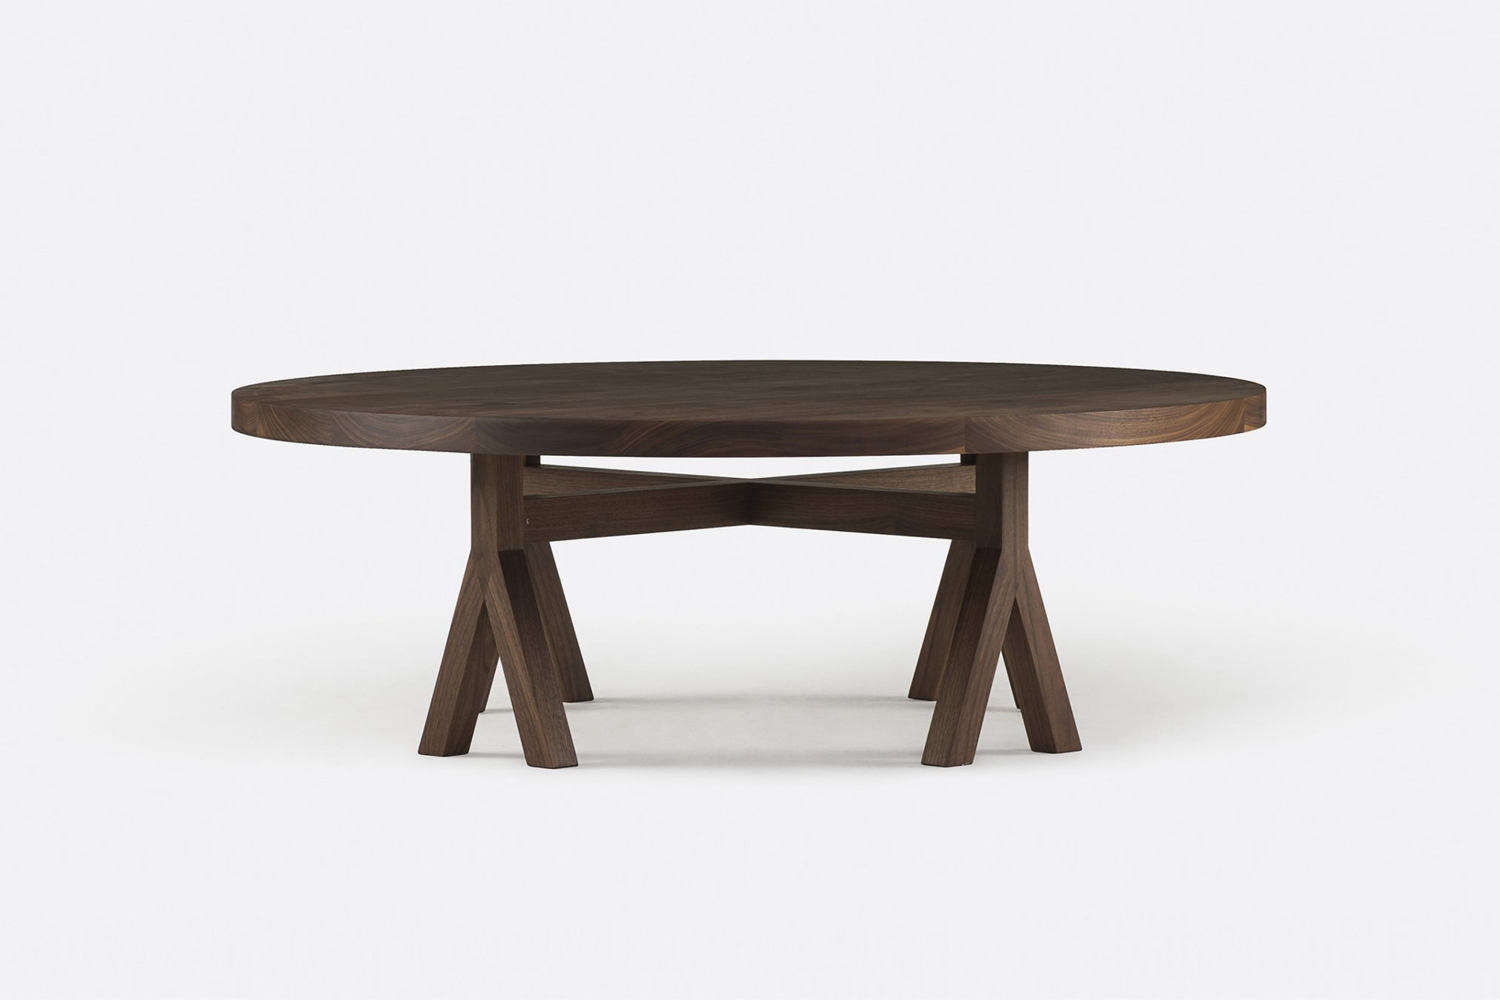 Designed by Commune, the Coffee Table, shown in Danish oiled walnut, is available through De La Espada. Contact for price and ordering information.